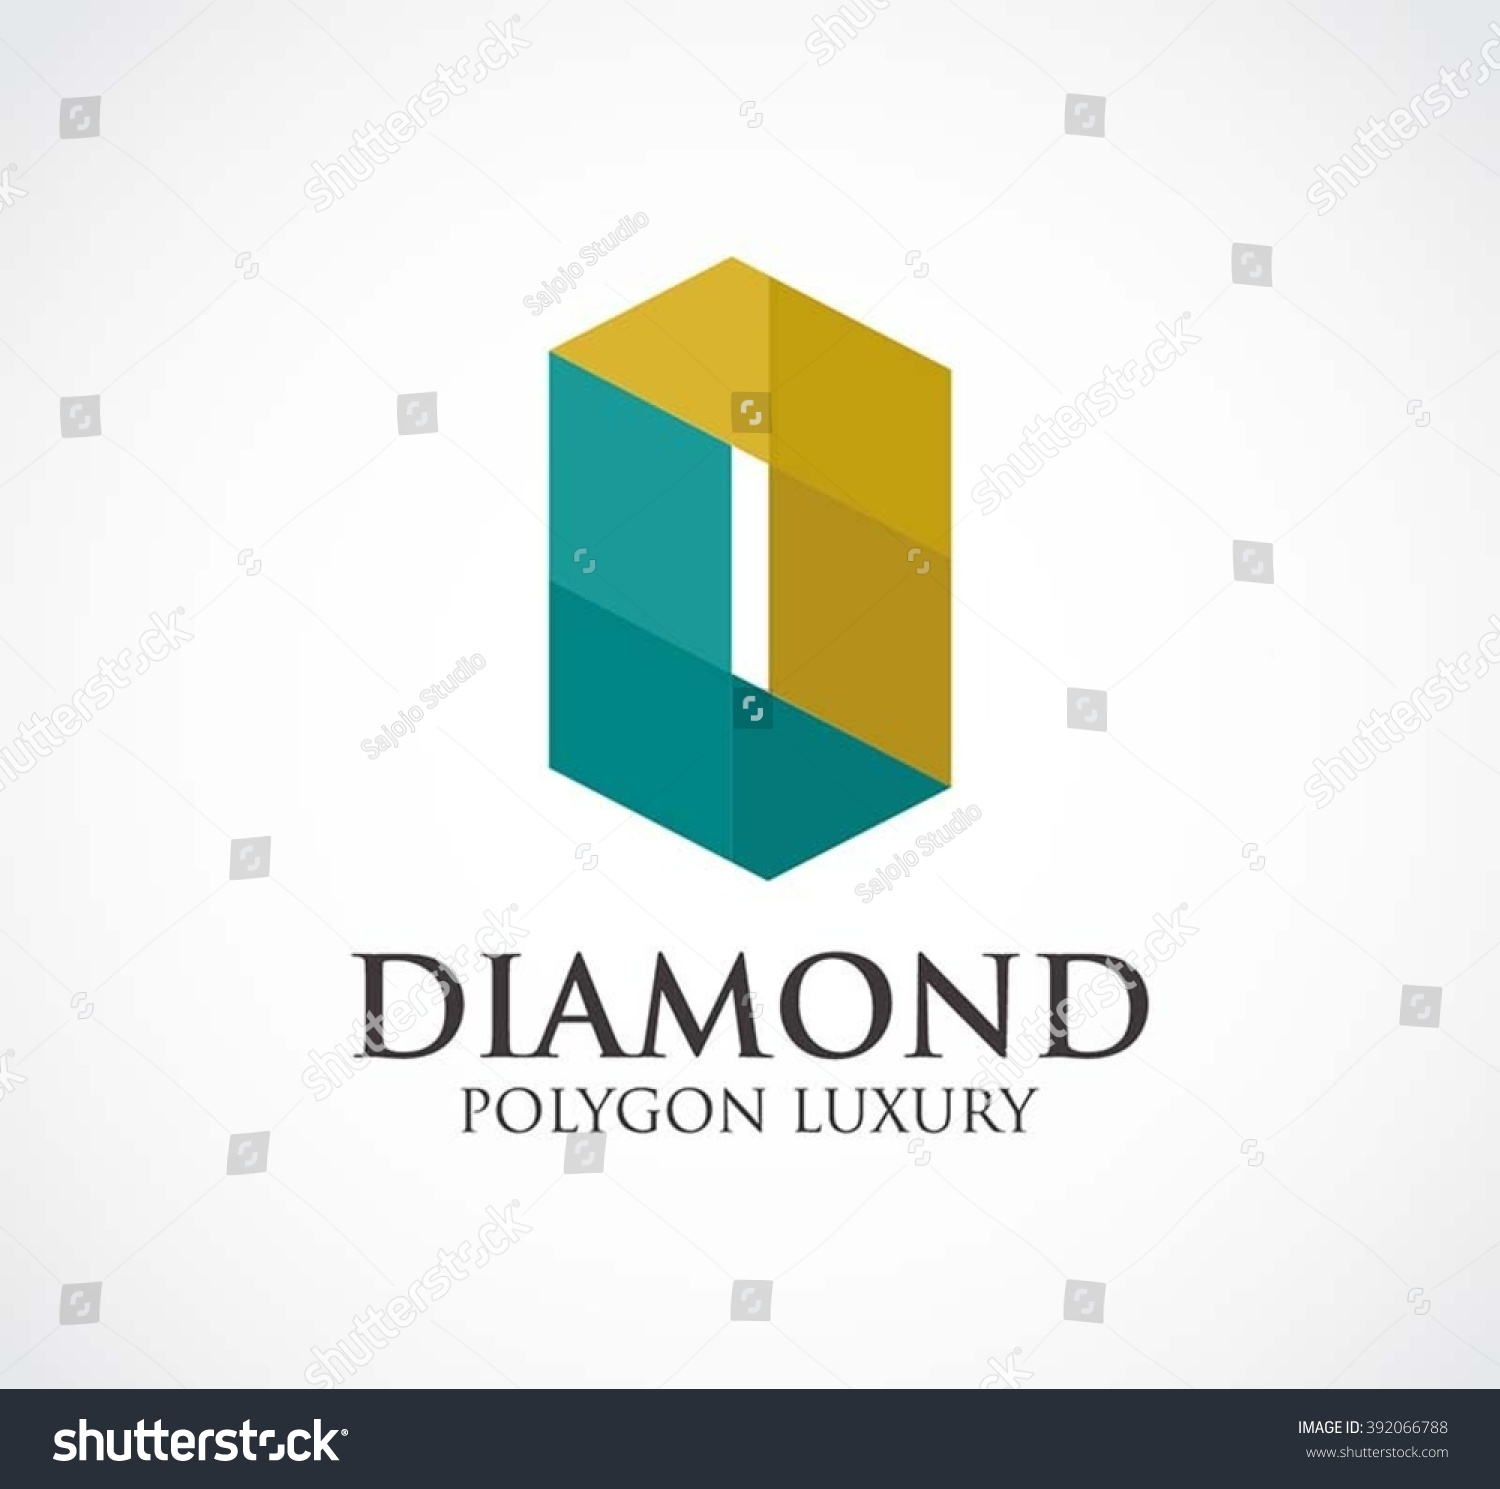 polygon stock diamond photo gem crystal quartz jewelry stone mystocks mineral blue depositphotos by geometric shape rock amethyst mosaic